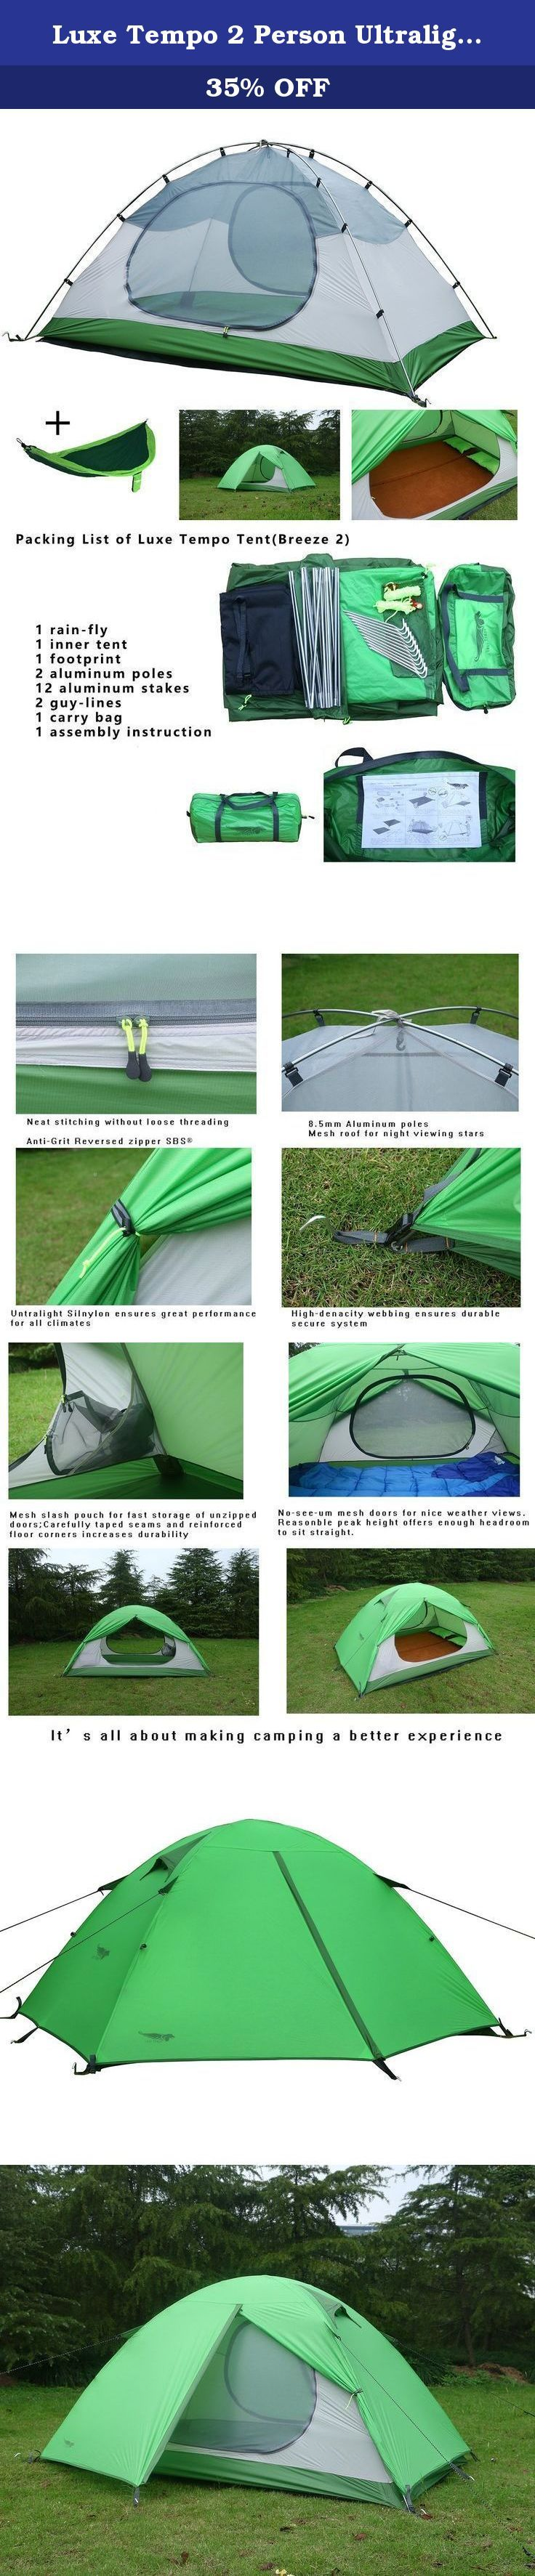 Luxe Tempo 2 Person Ultralight Tents for Camping 3.3LB with Footprint High-end Silnylon Backpacking Tents with Free Hammock Aluminum Poles 2 Doors 2 Vestibules. Designing Note: Luxe Tempo Breeze 2 is a high-end expedition tents features lightweight constructions. Equal-length corded aluminum poles and pole clips makes setup very easy. Fully taped silnylon rain fly and tent floor greatly reduces package weight while enhancing the weather-proofing performance to 5000mm. Tent canopy is a...